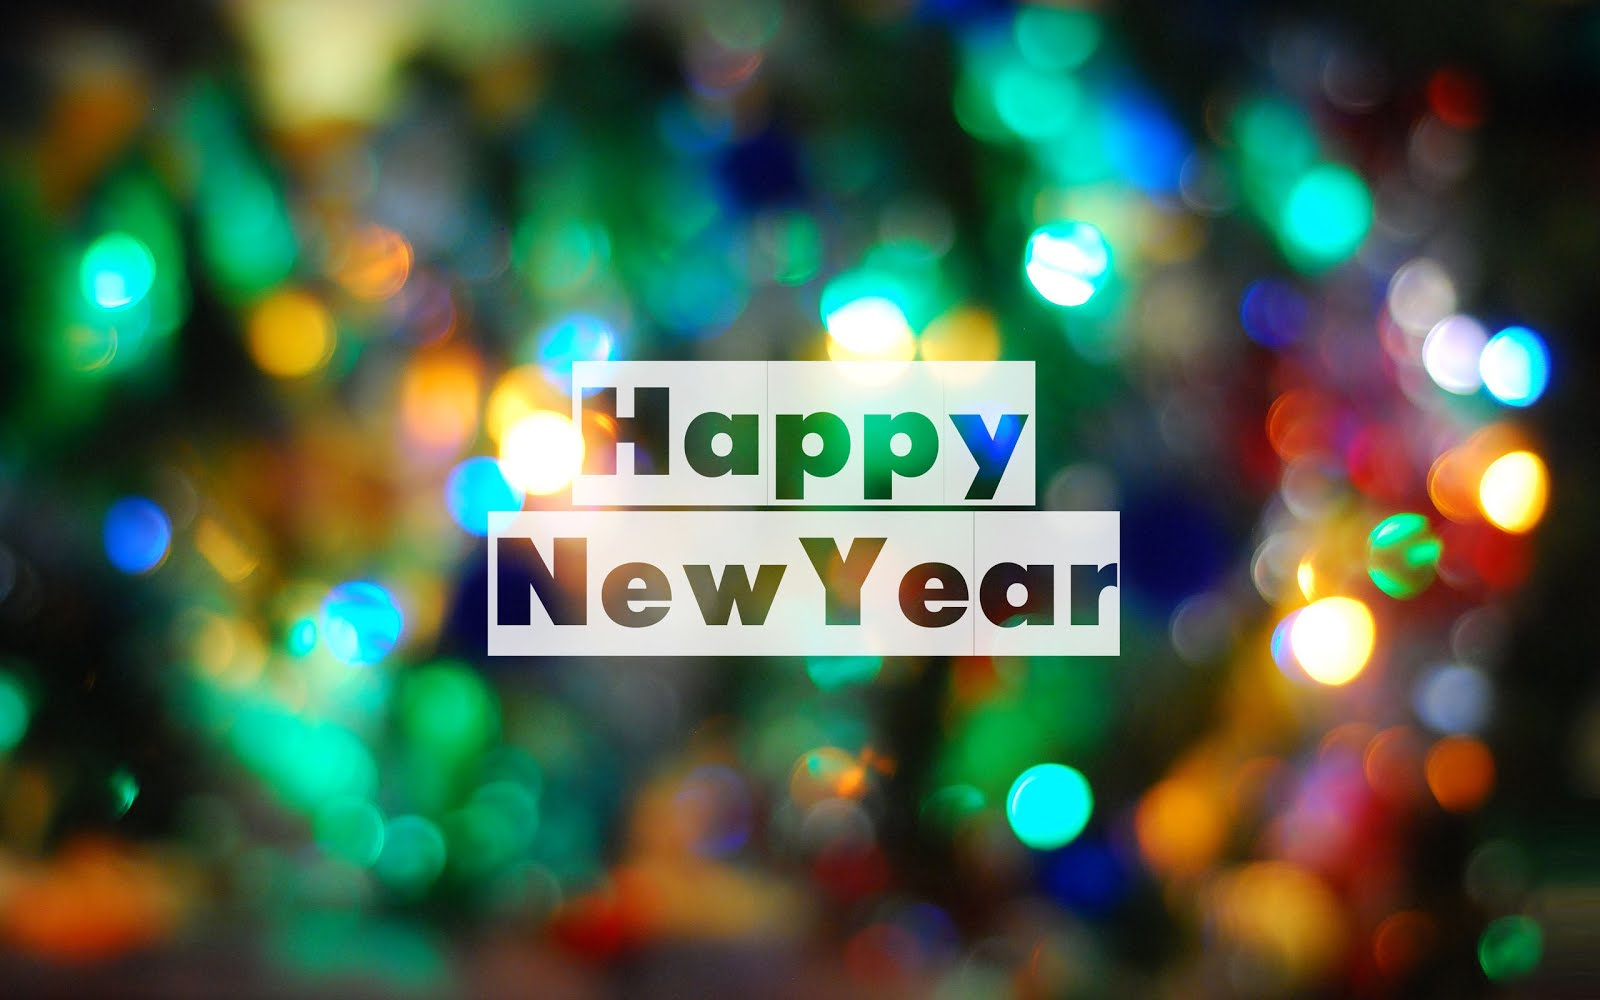 happy_new_year_2014_hd_wallpapers_9